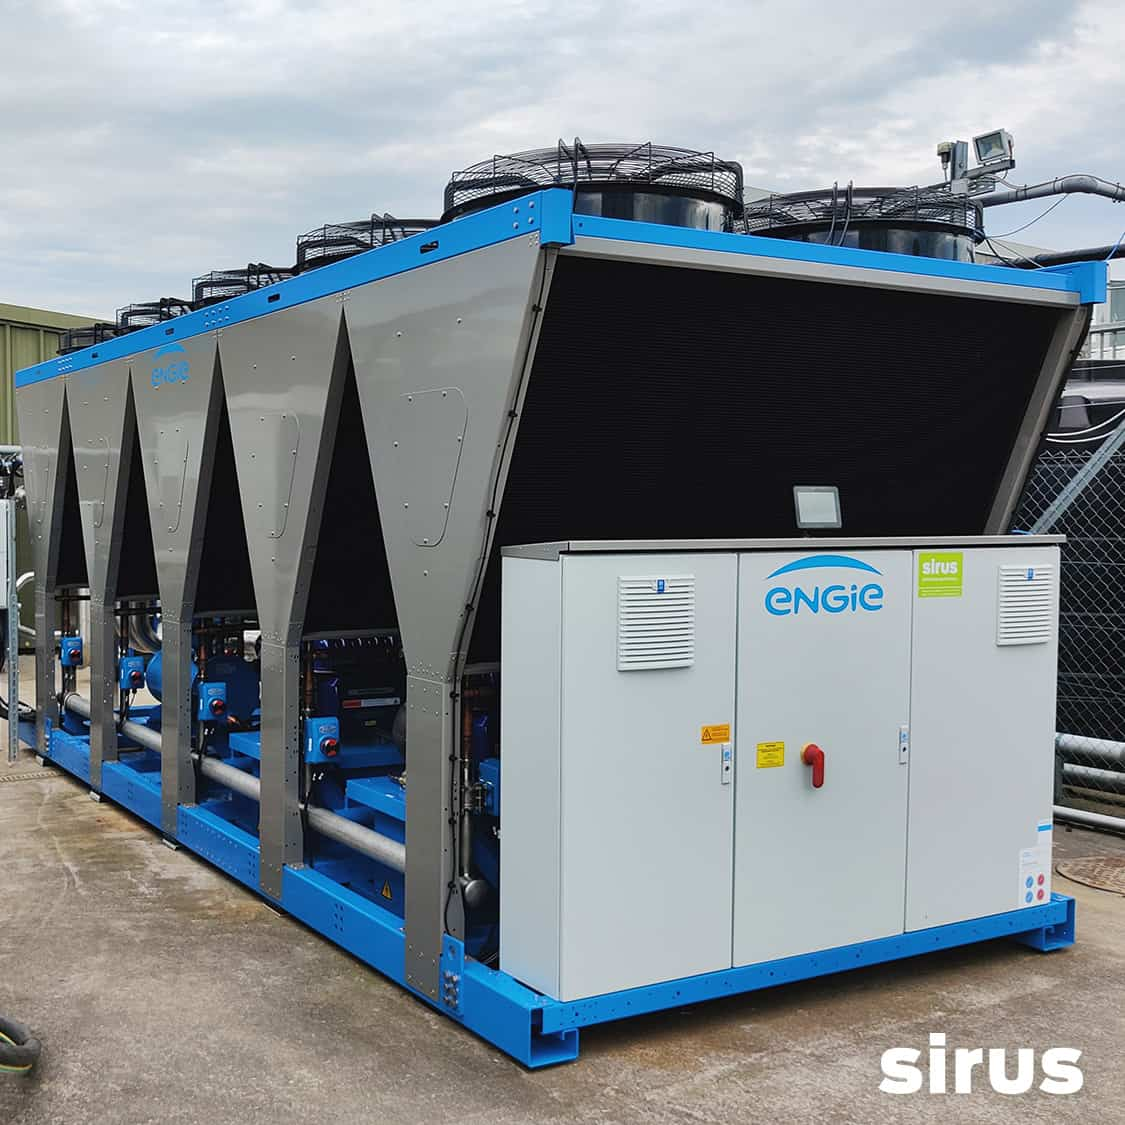 Air-cooled Chiller supplied and installed by Sirus